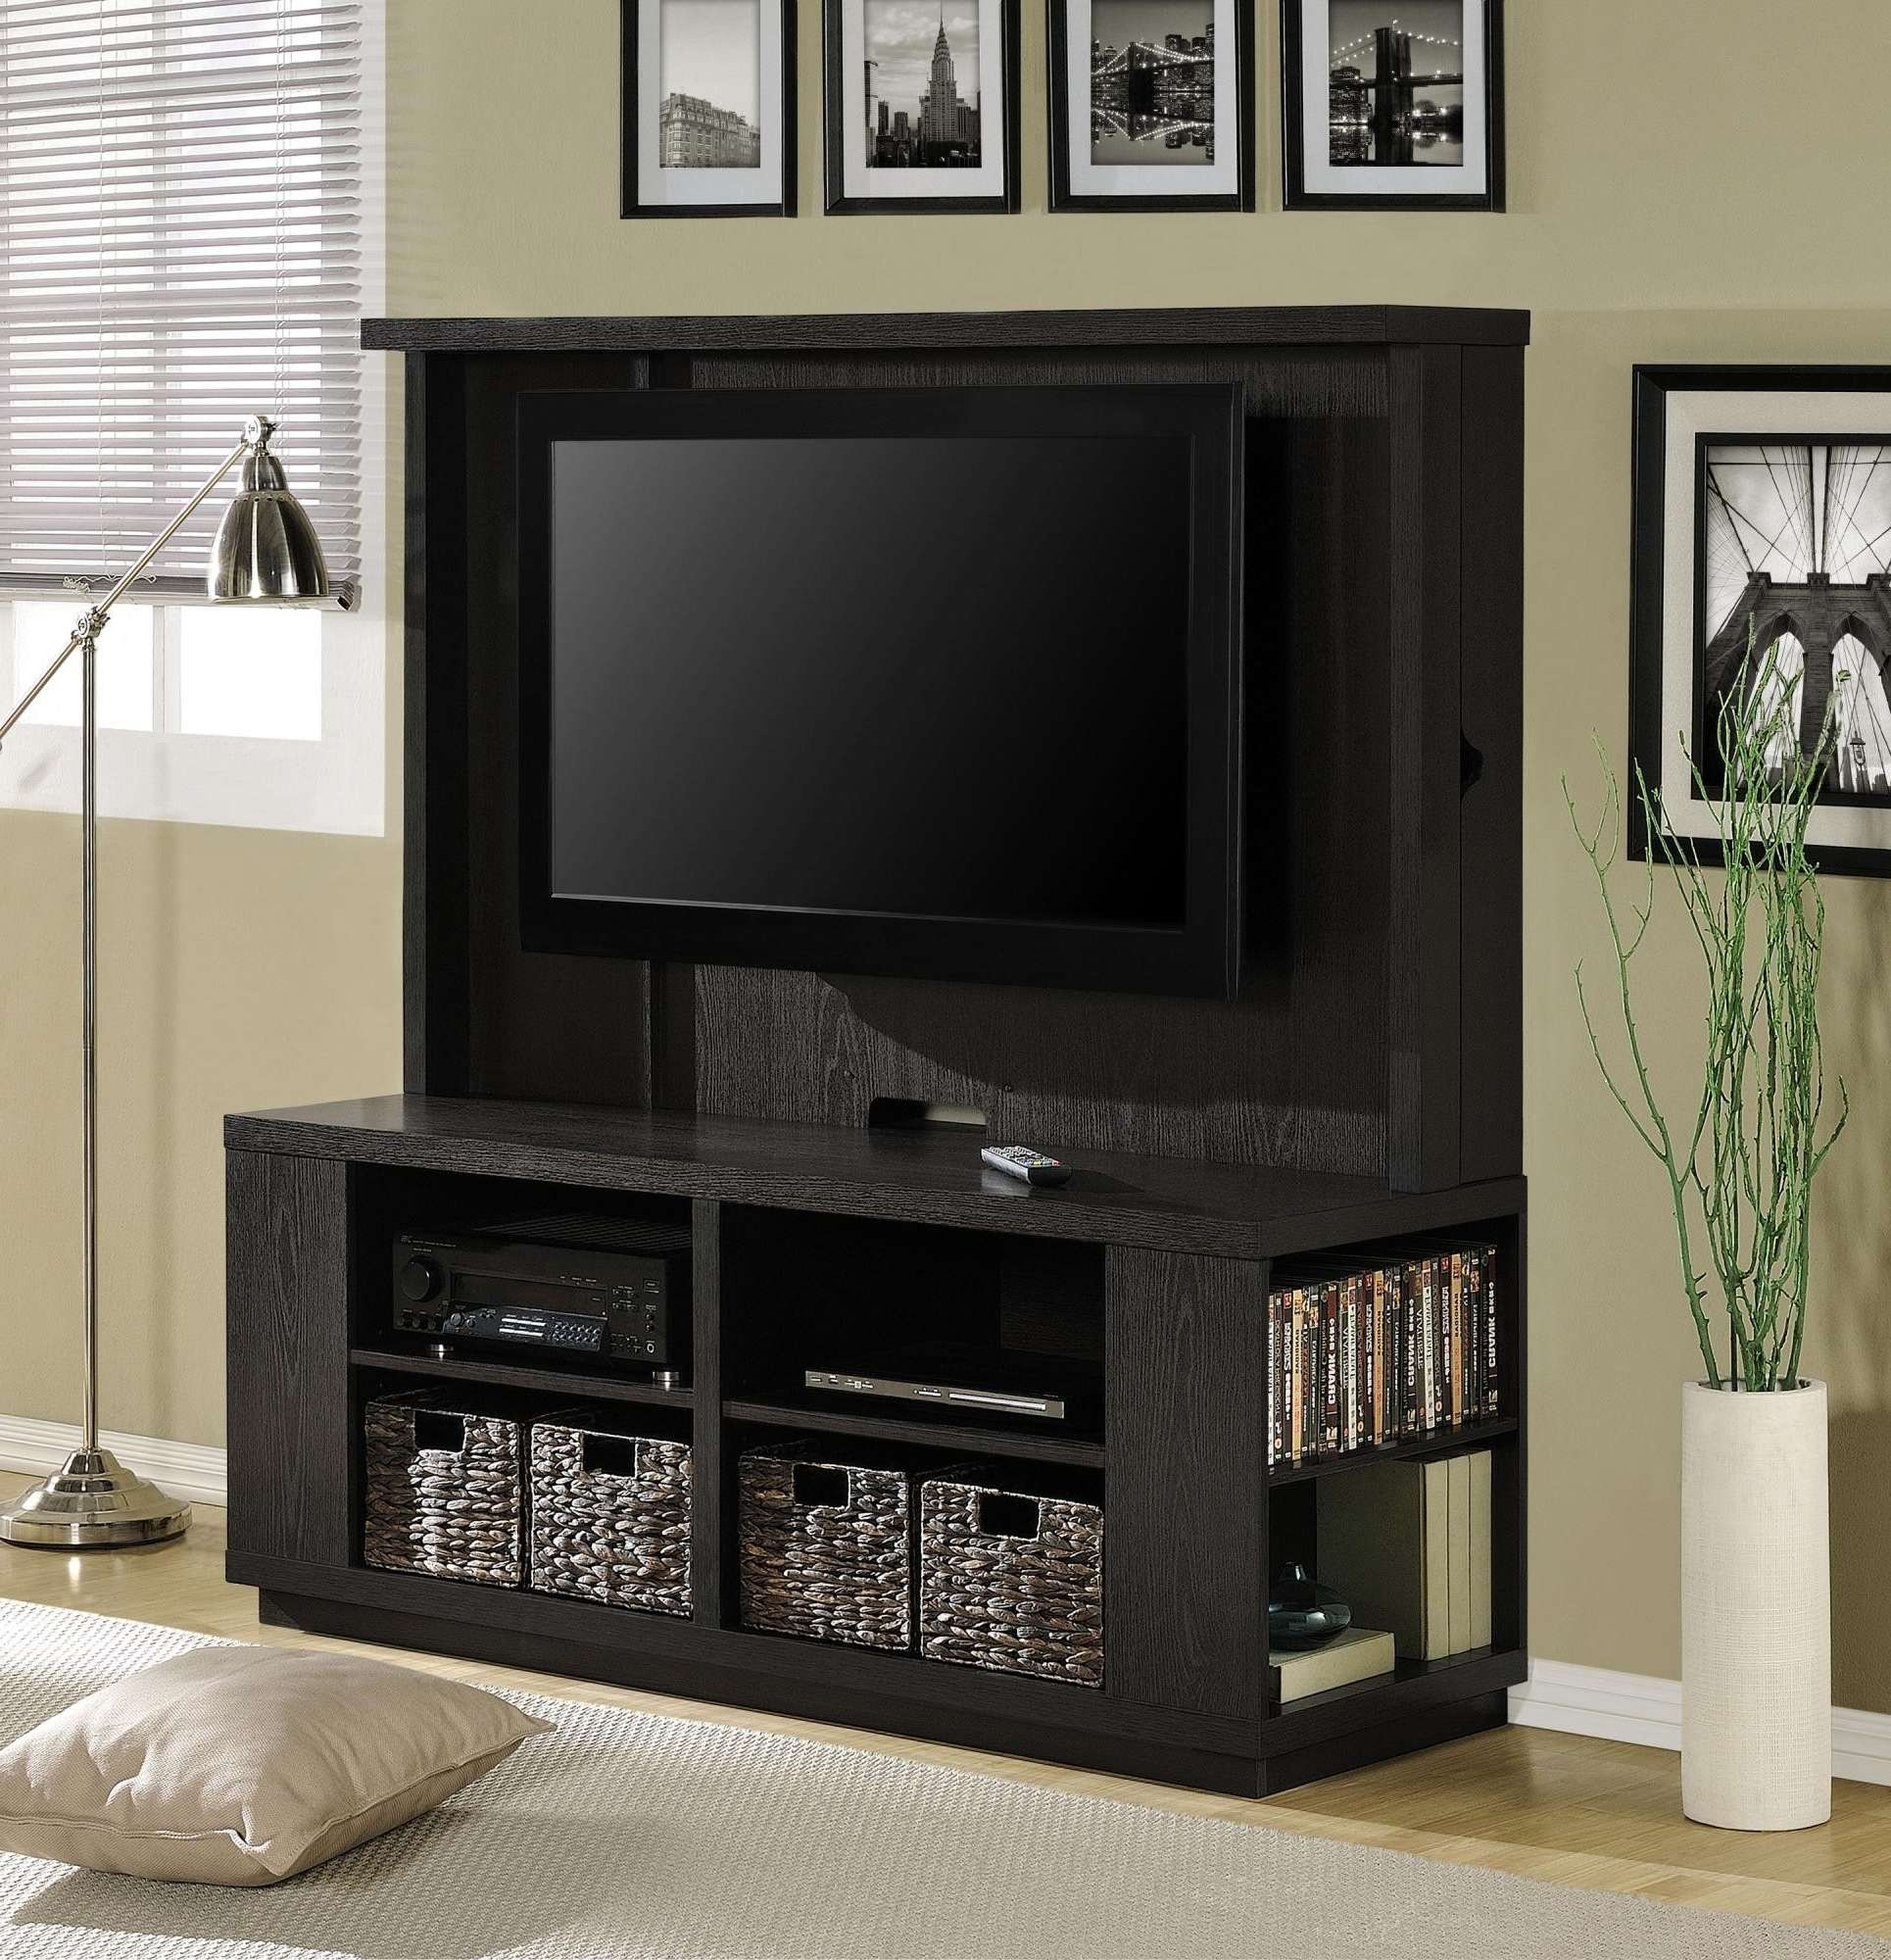 Shelves : Awesome Small Black Wall Mounted Tv Stand With Storage Inside Tv Cabinets With Storage (View 11 of 20)